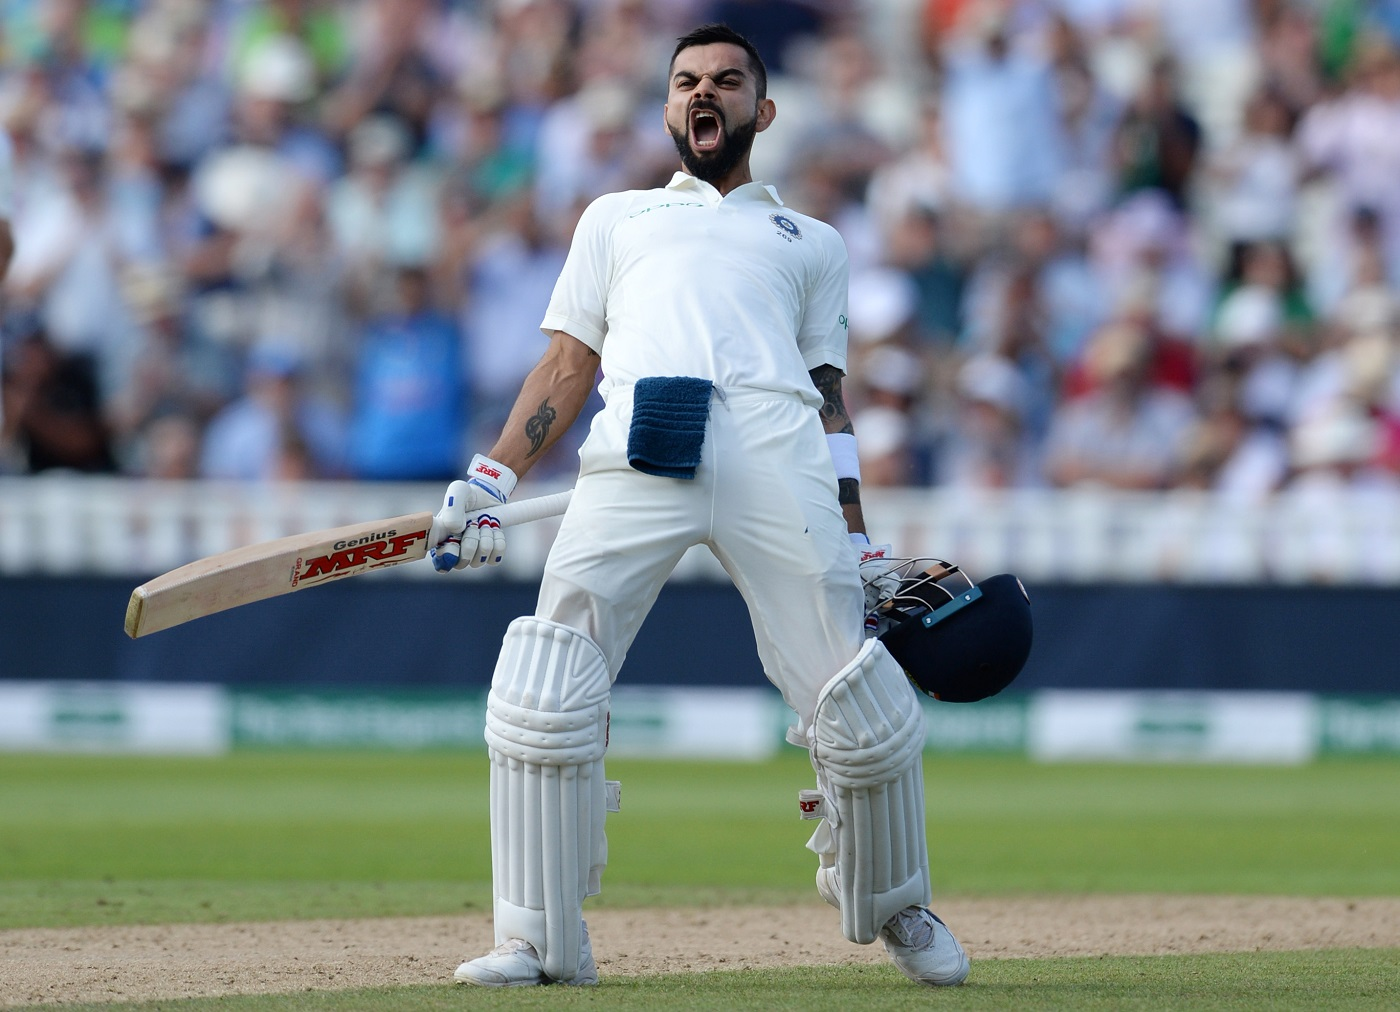 India vs England: India dismisses England for 287 in first innings